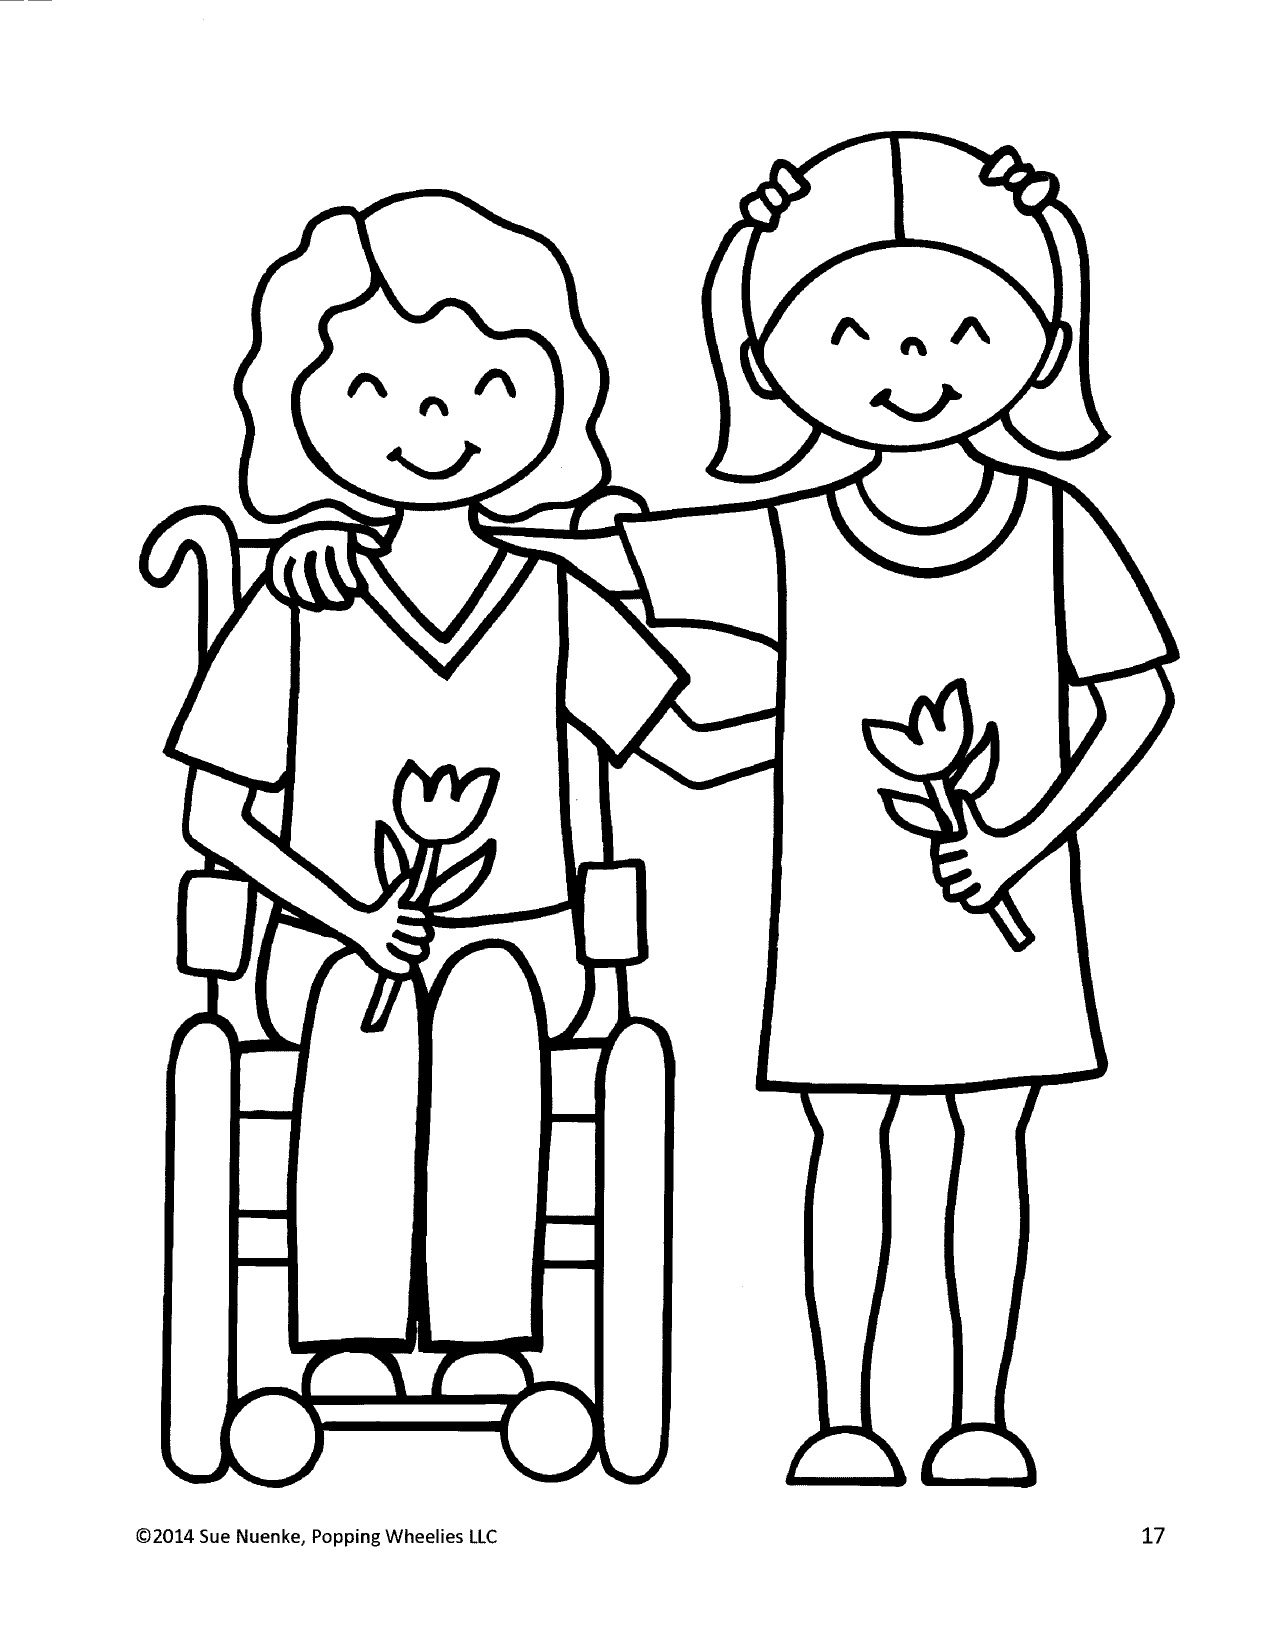 Coloring books for childhood diseases - New3 New2